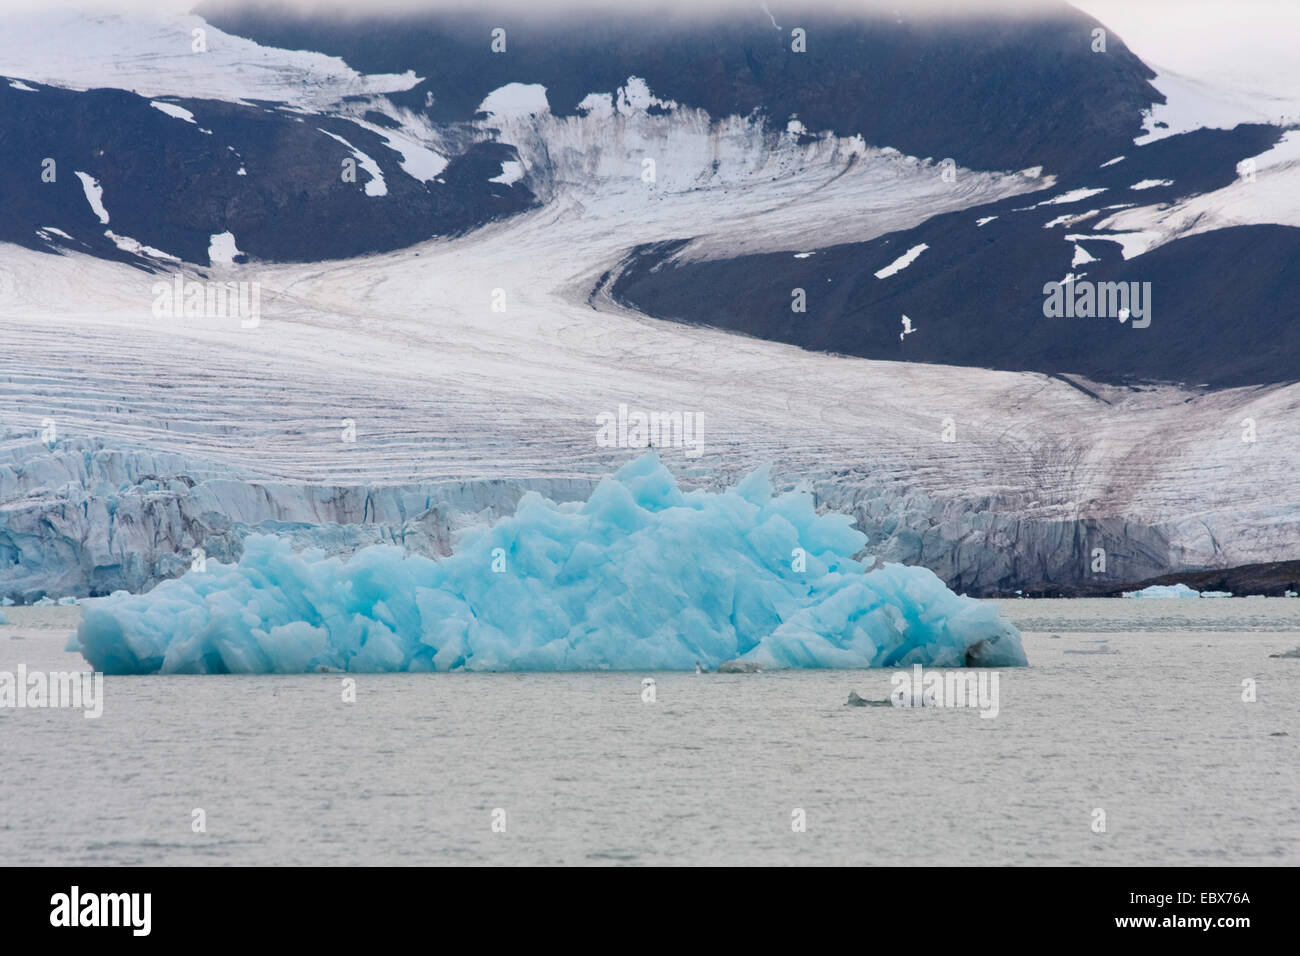 blue shimmering iceberg in the water in front of glacier, Norway, Svalbard, Llliehoeoekbreen - Stock Image